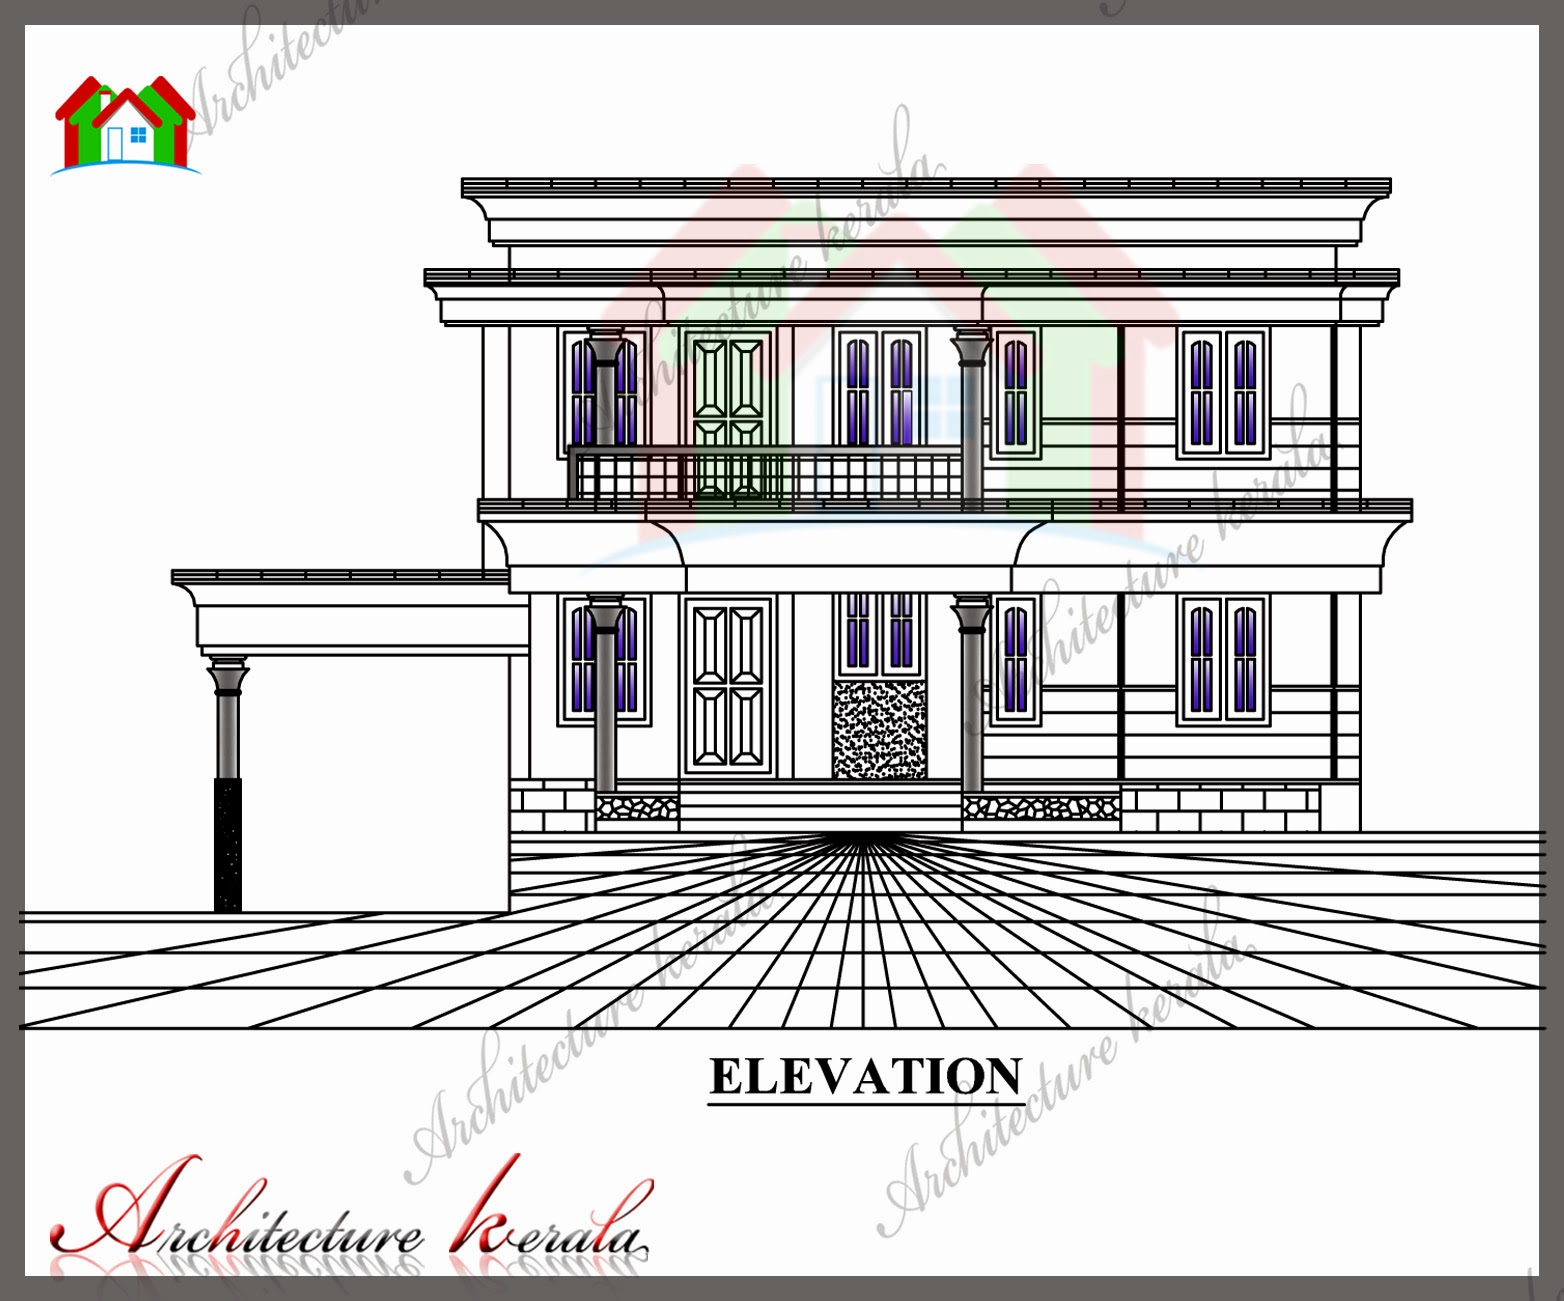 1800 sq ft house plan with detail dimensions for House design plan and elevation